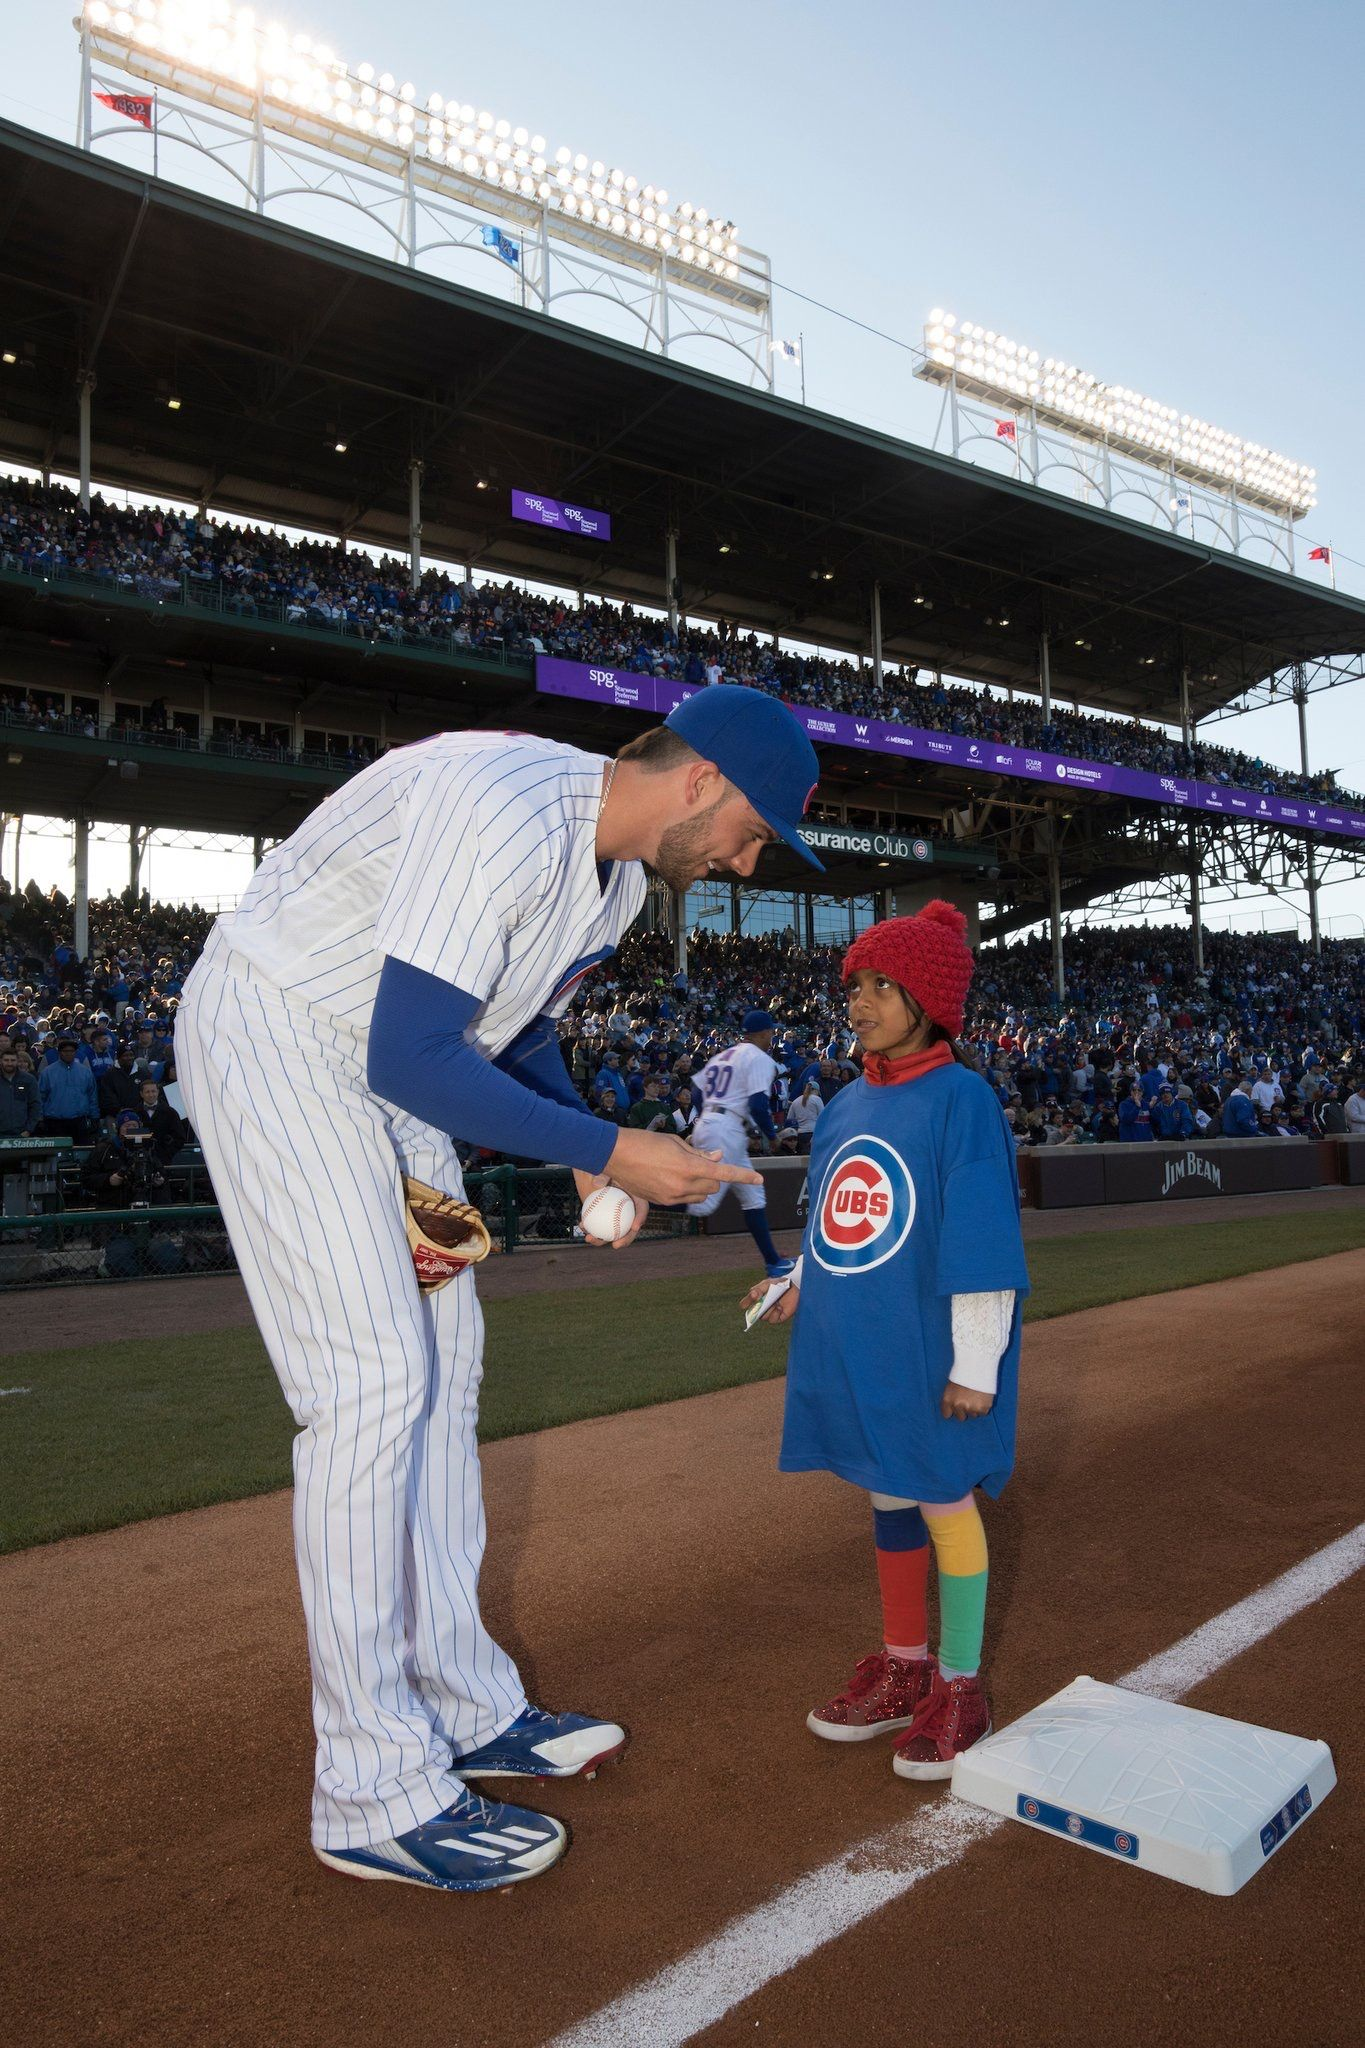 Pin By Angie W On Kris Bryant Cubs Win Cubs Fan Chicago Cubs